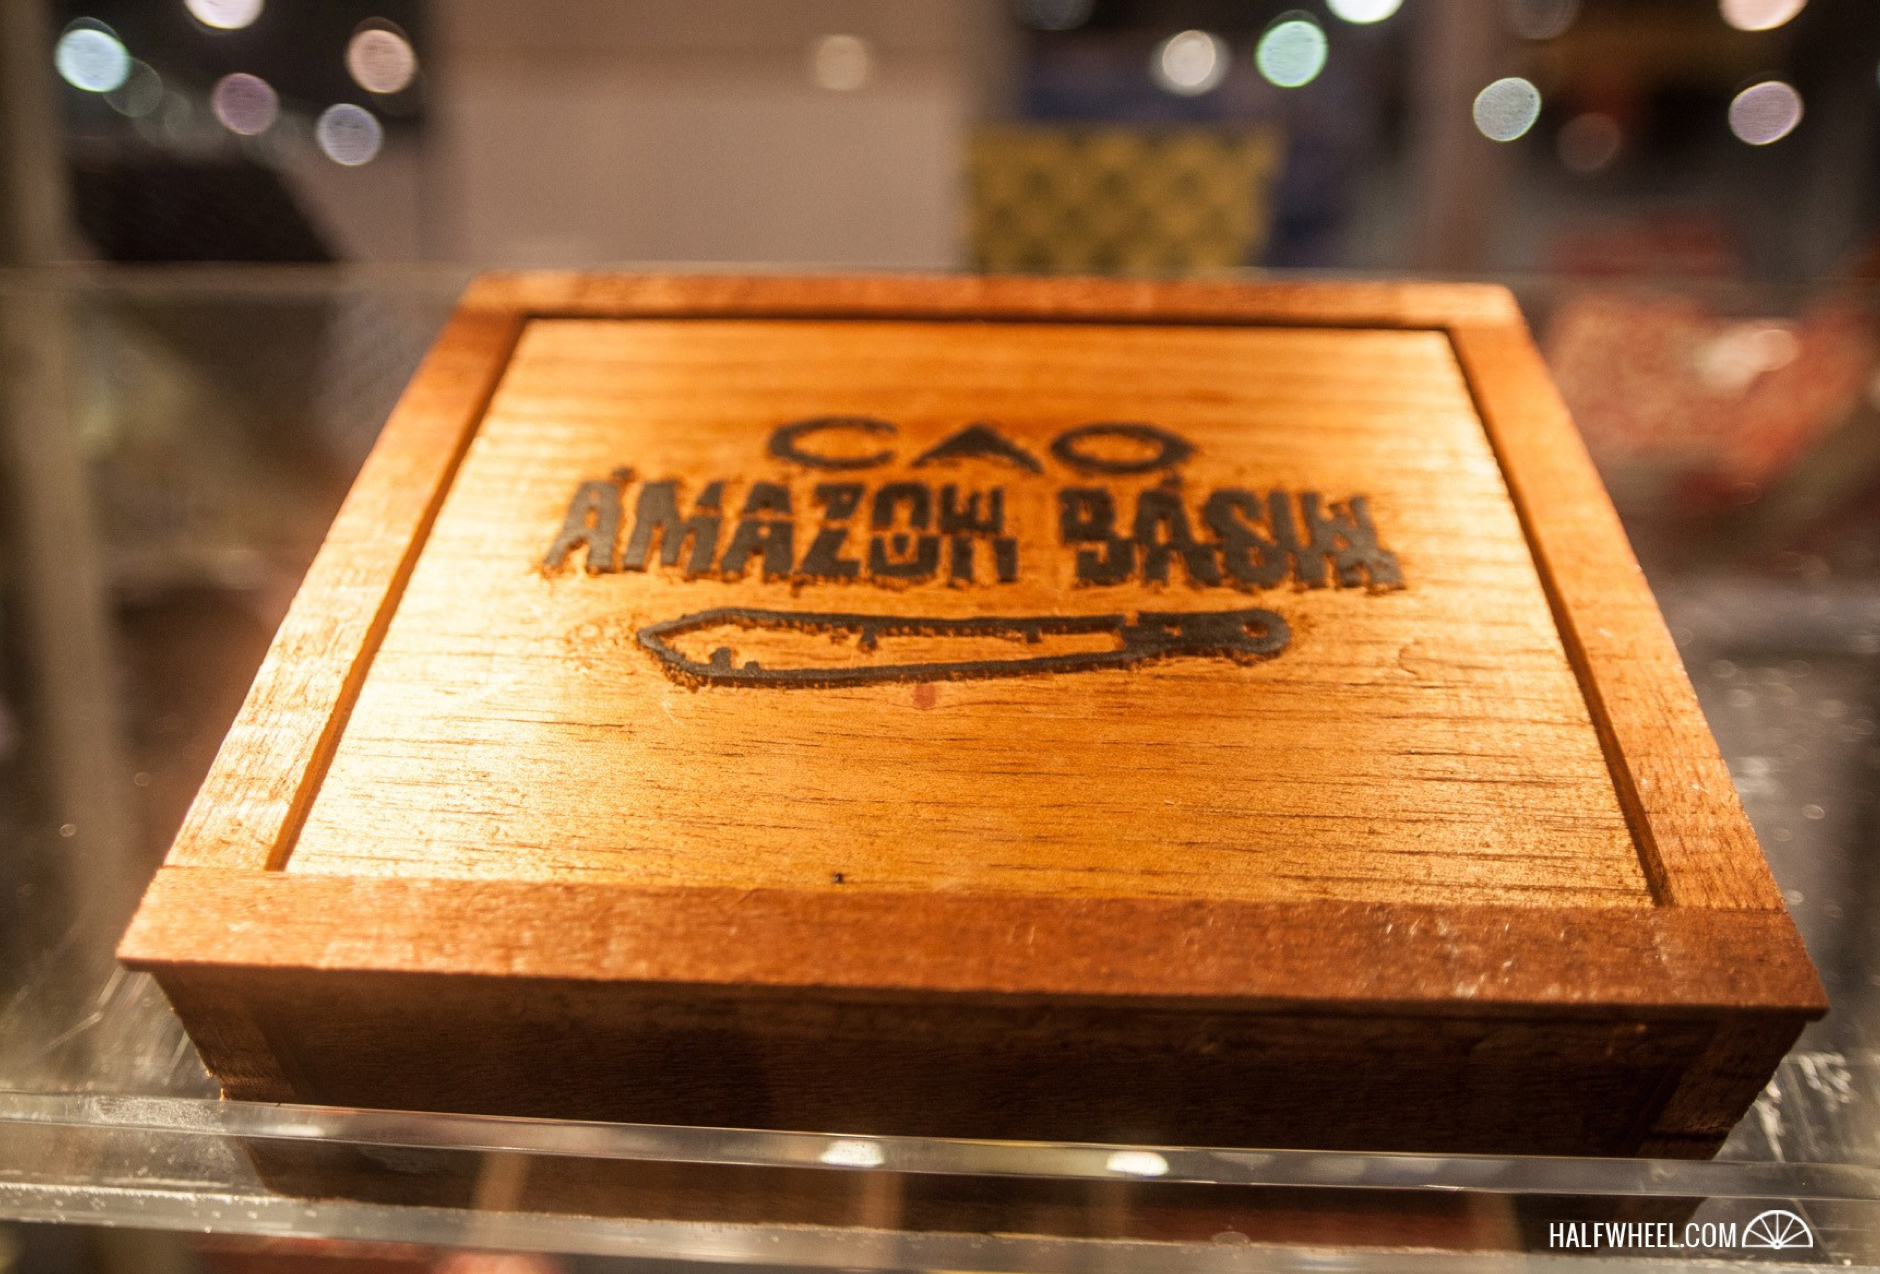 cao-amazon-basin-box